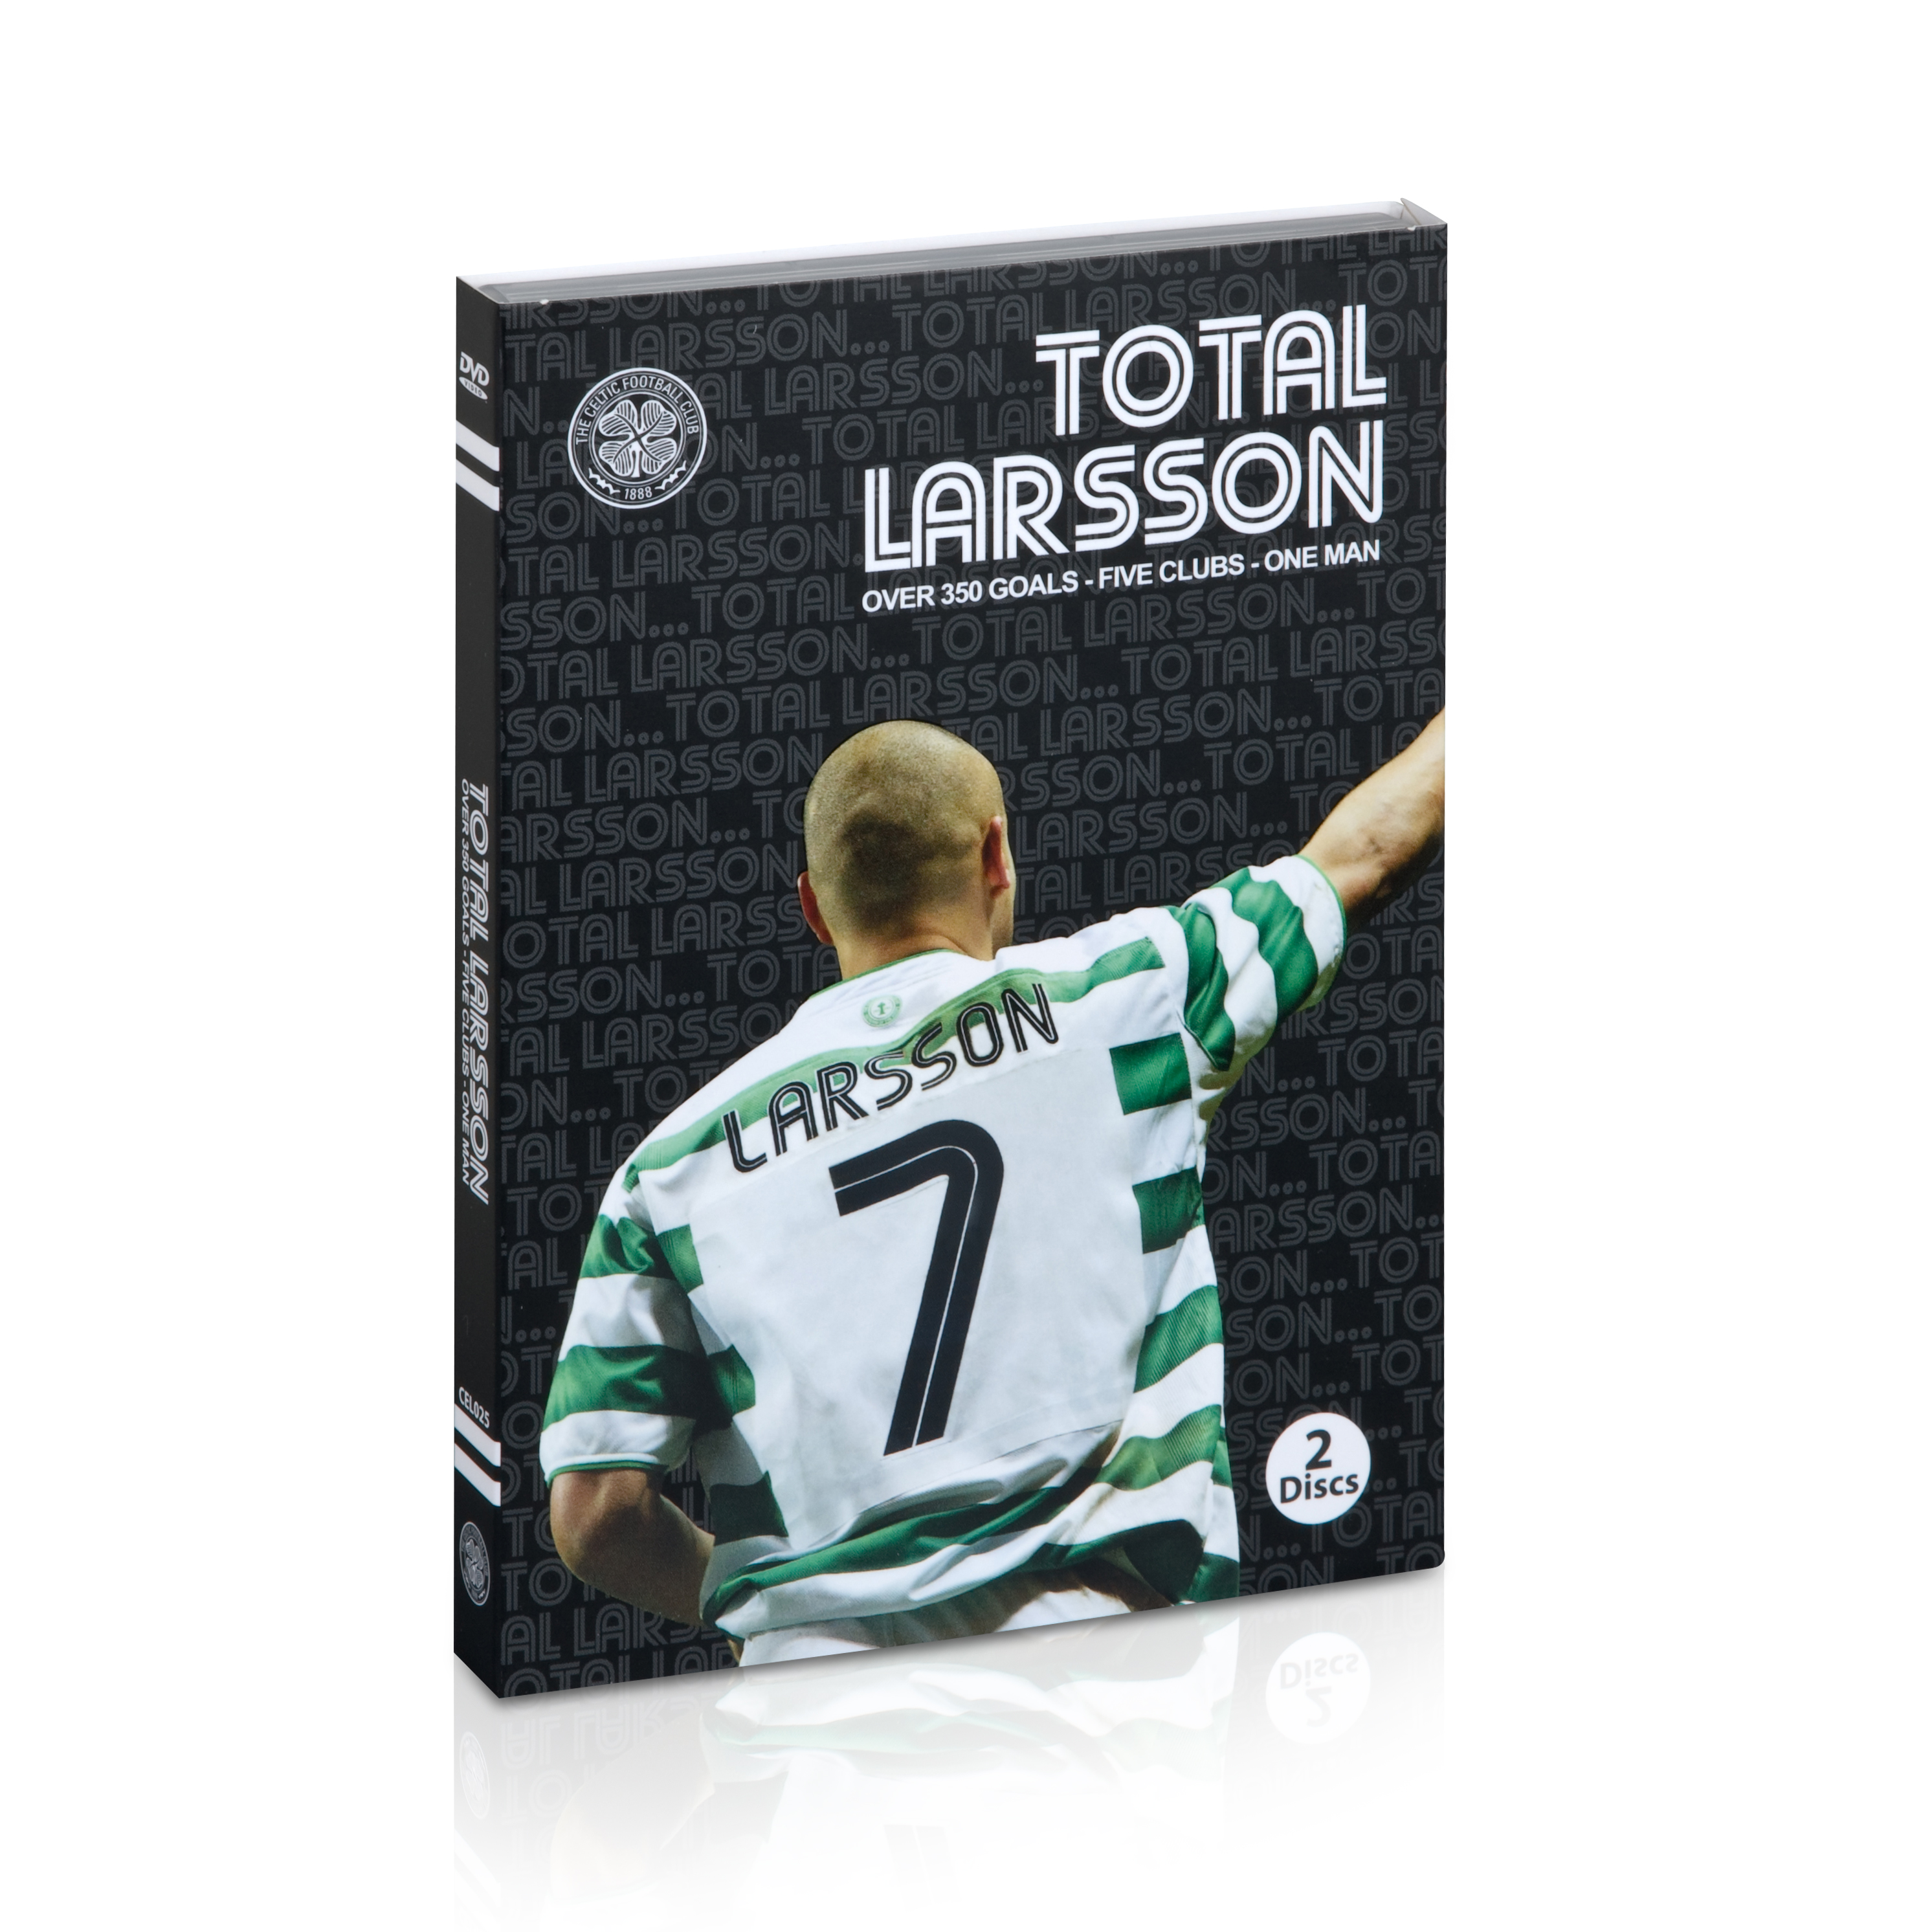 Celtic Total Larsson - The Definitive Henrik Larsson Collection - Two Disc DVD